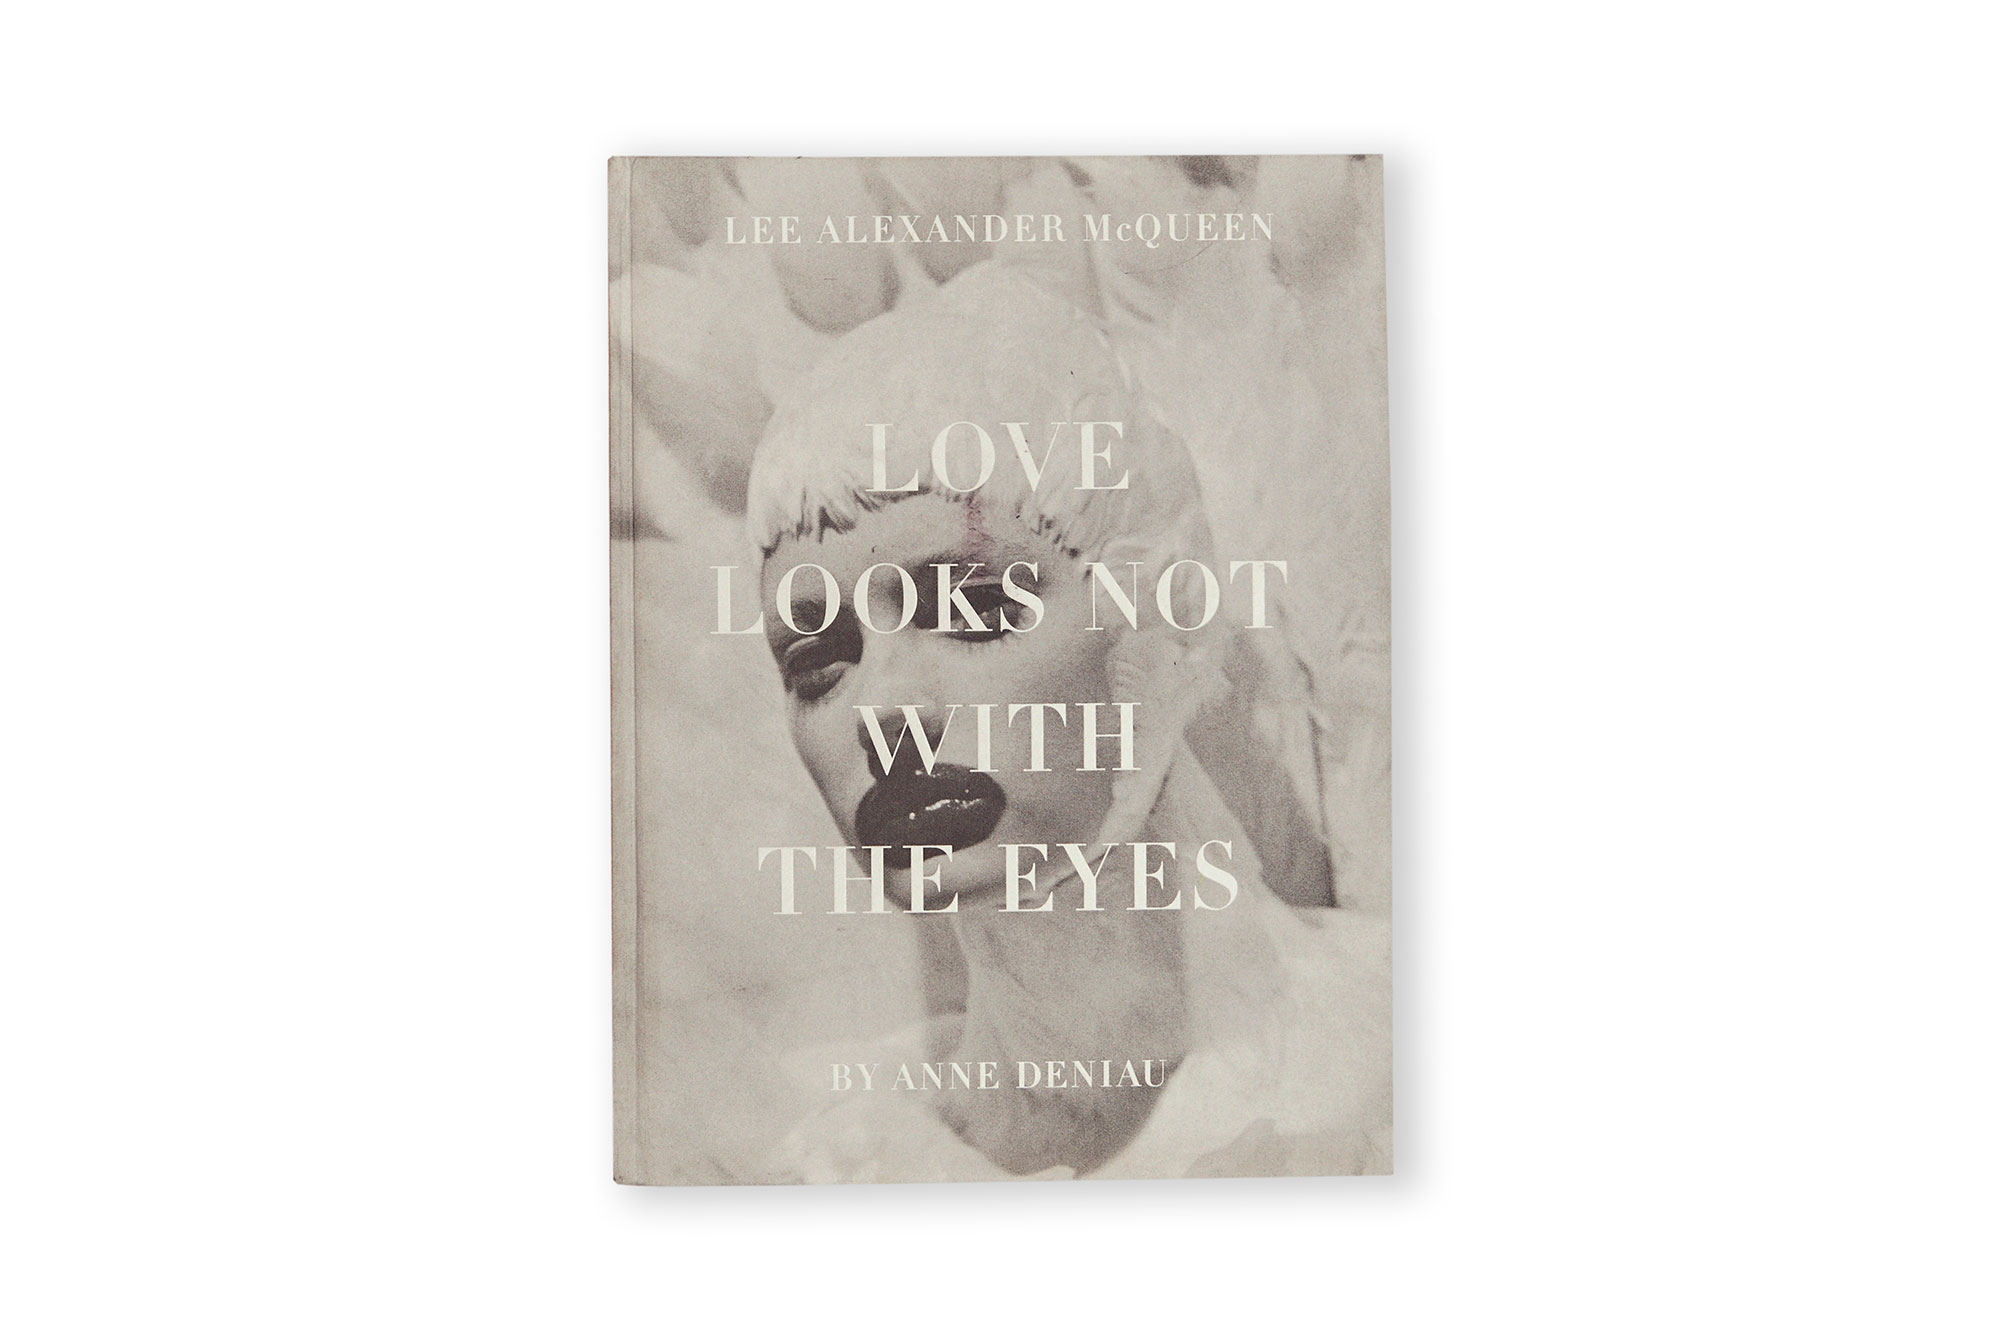 LOVE LOOKS NOT WITH THE EYES, anne deniau.